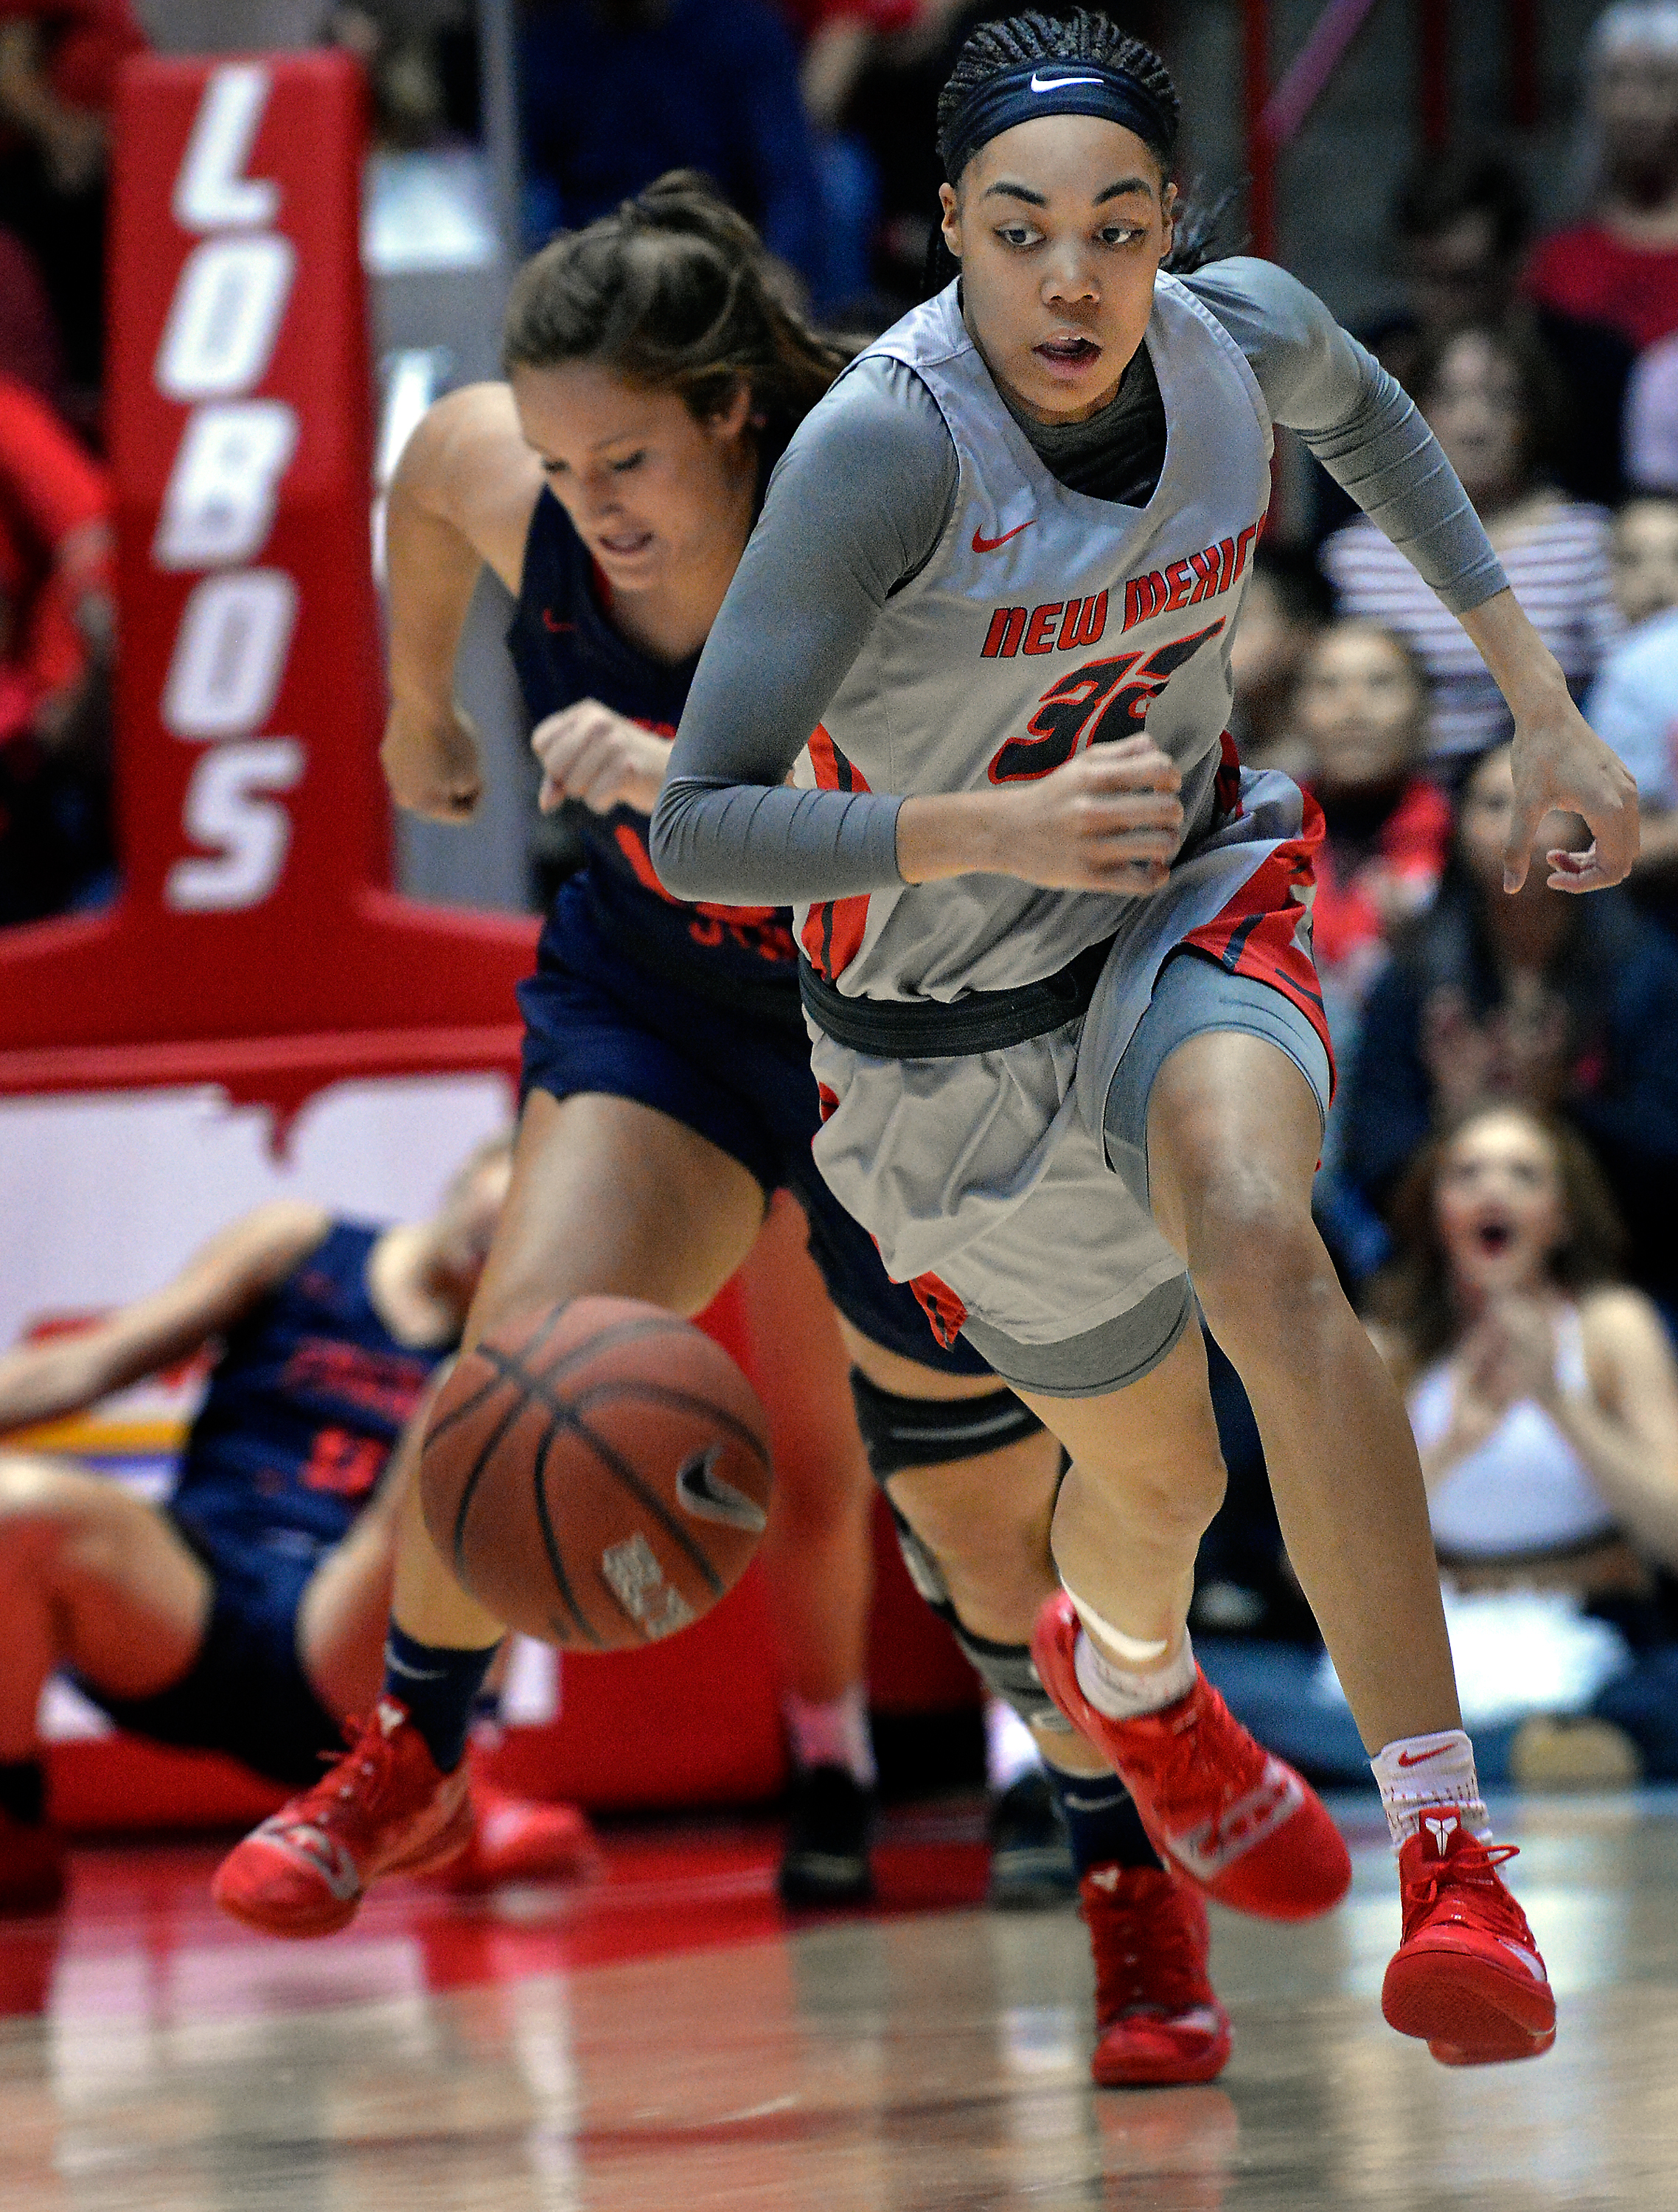 Women's hoops: Starting lineup is still in flux for Lobos